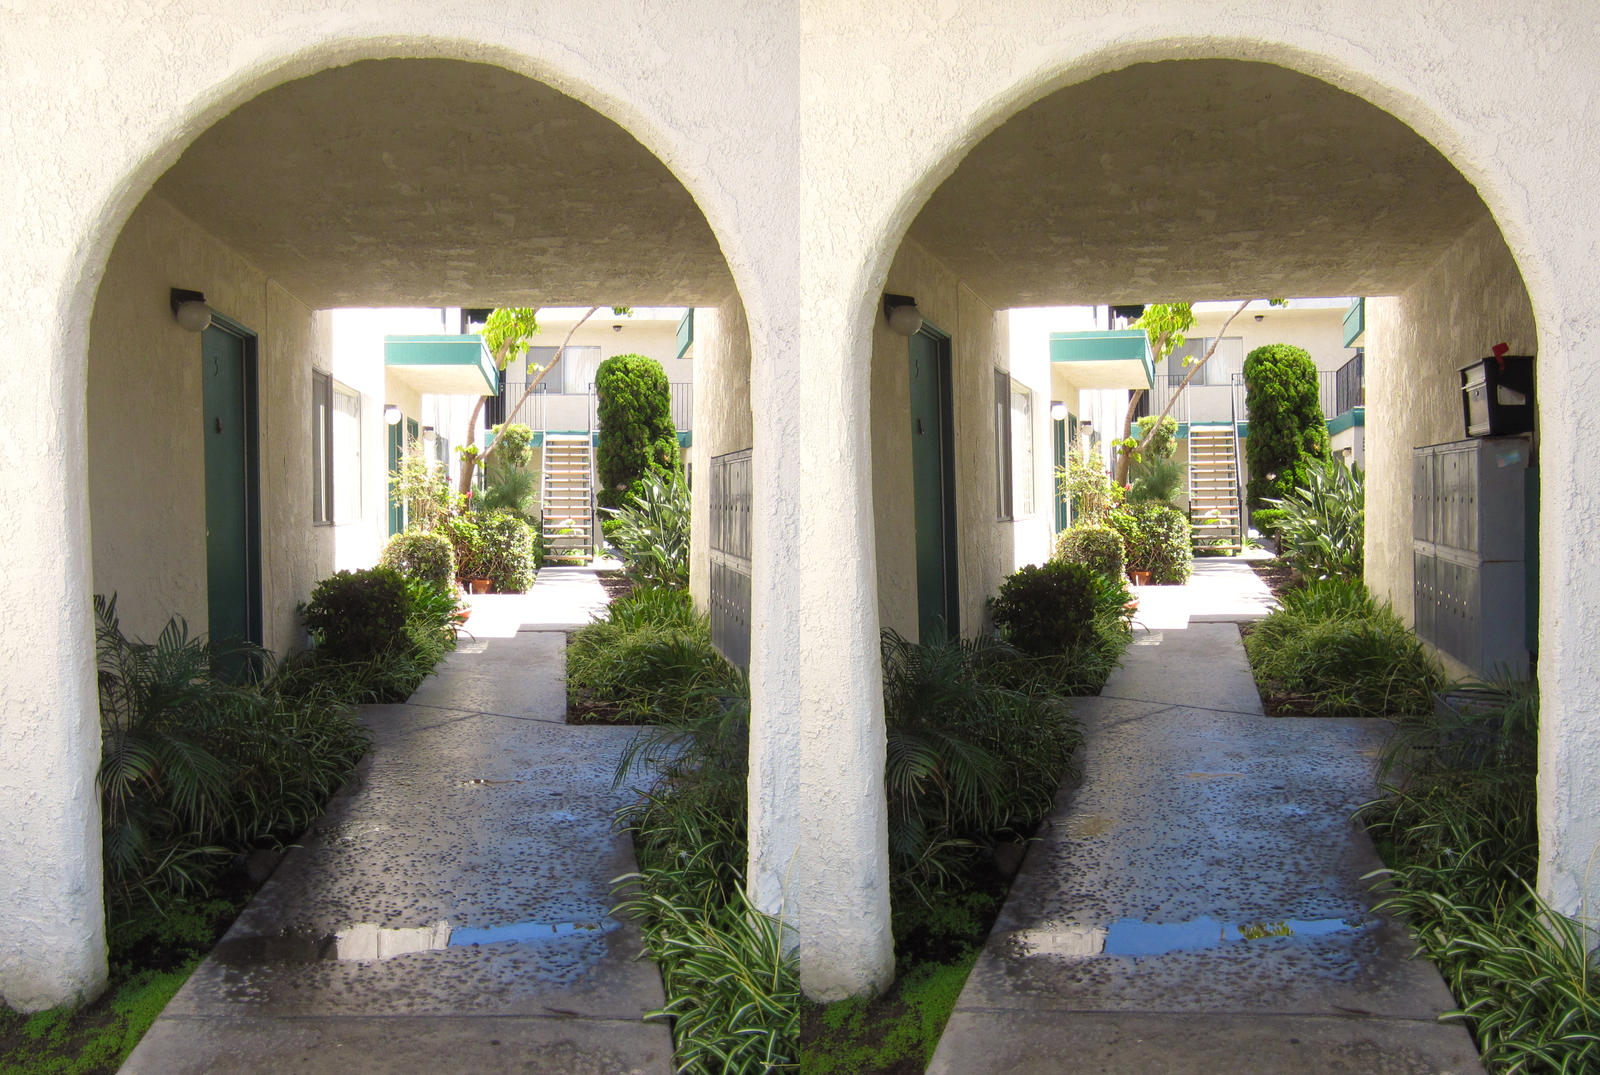 Stereograph - Entrance by alanbecker